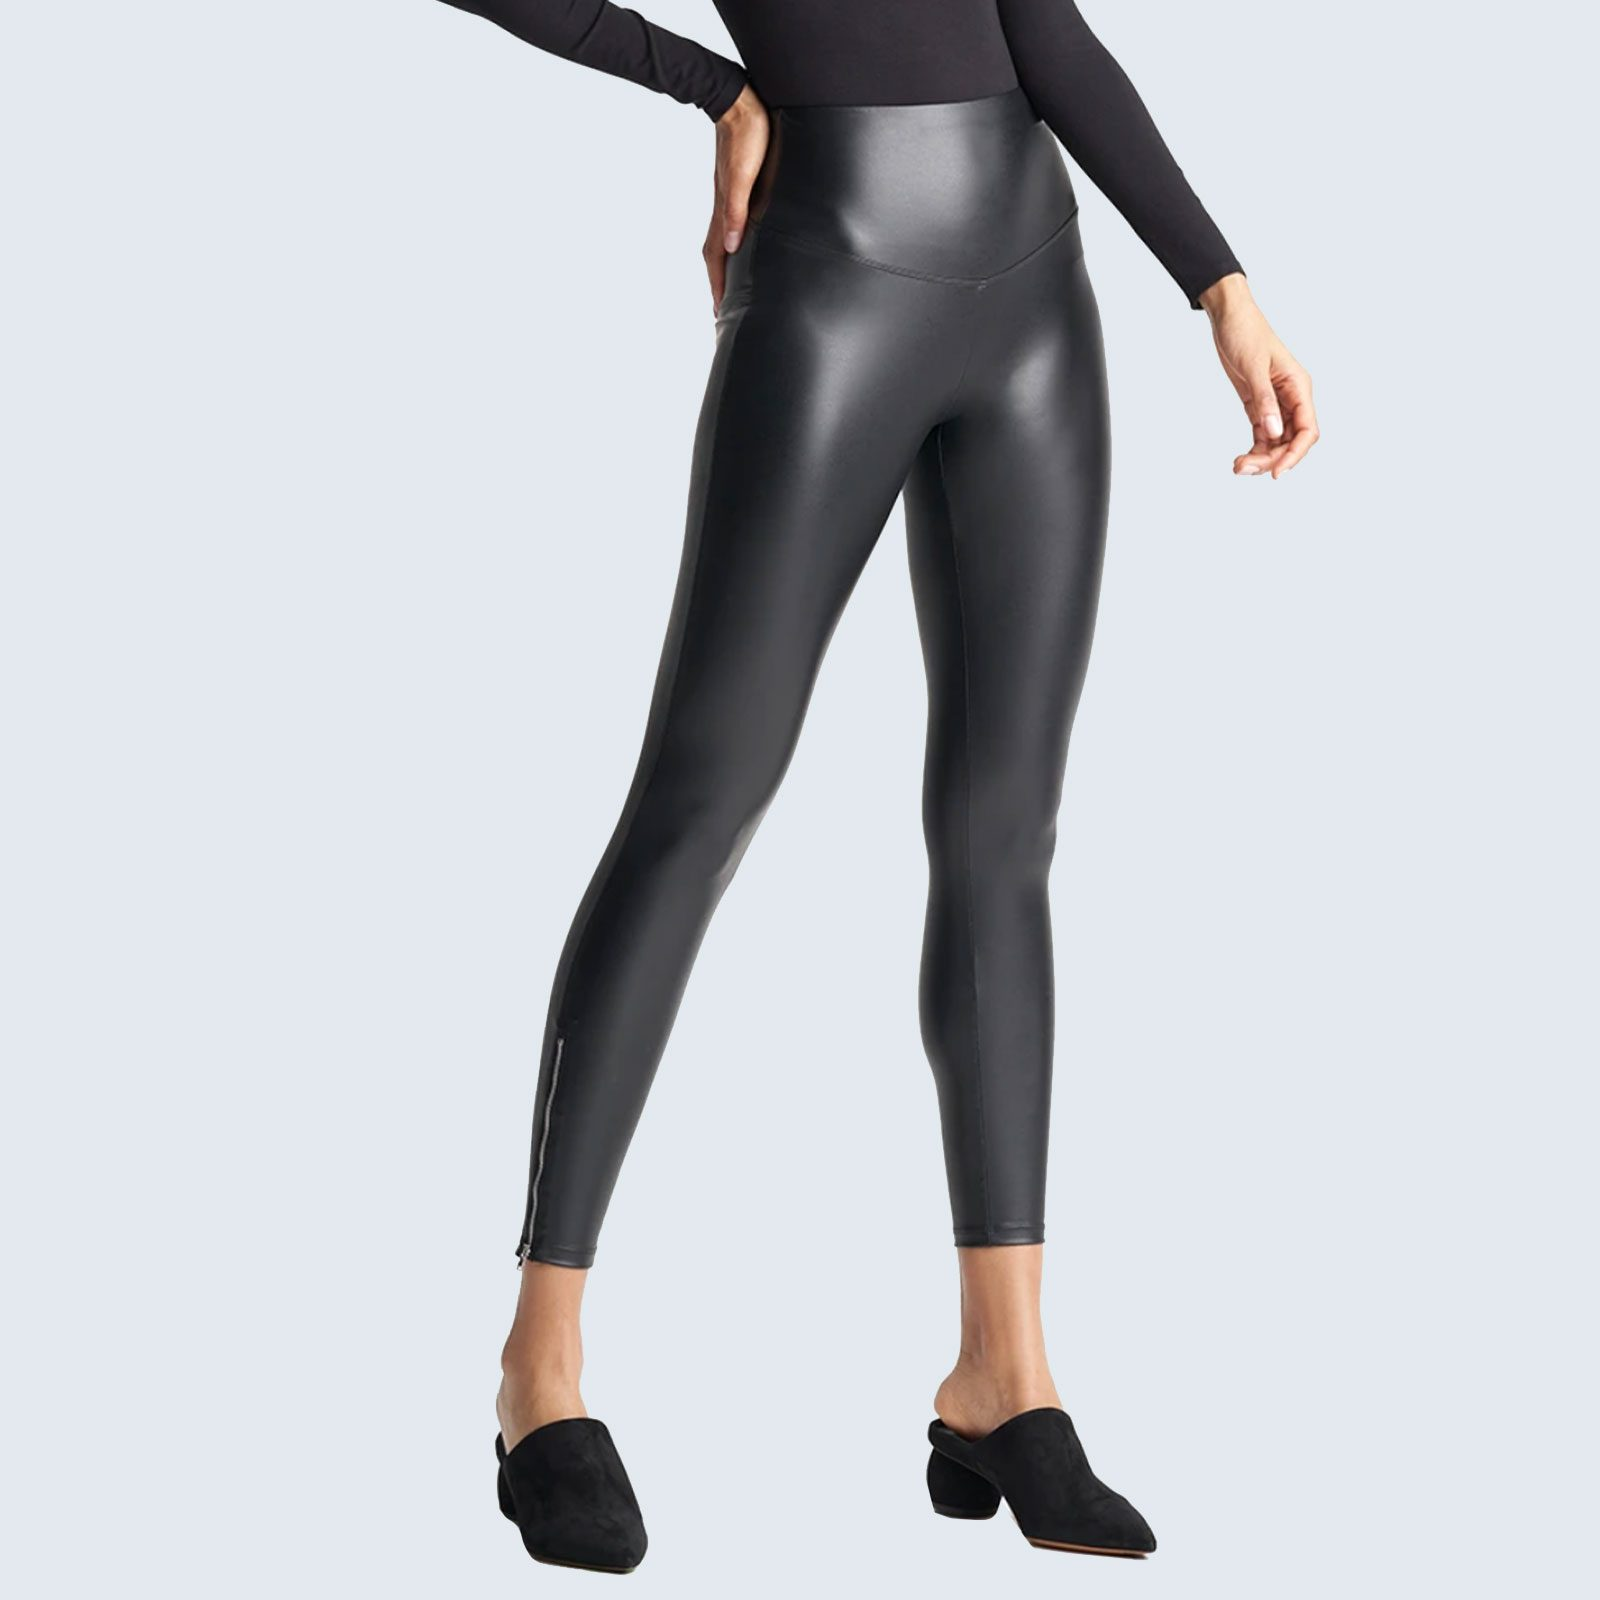 Best Butt-Lifting Leather Leggings